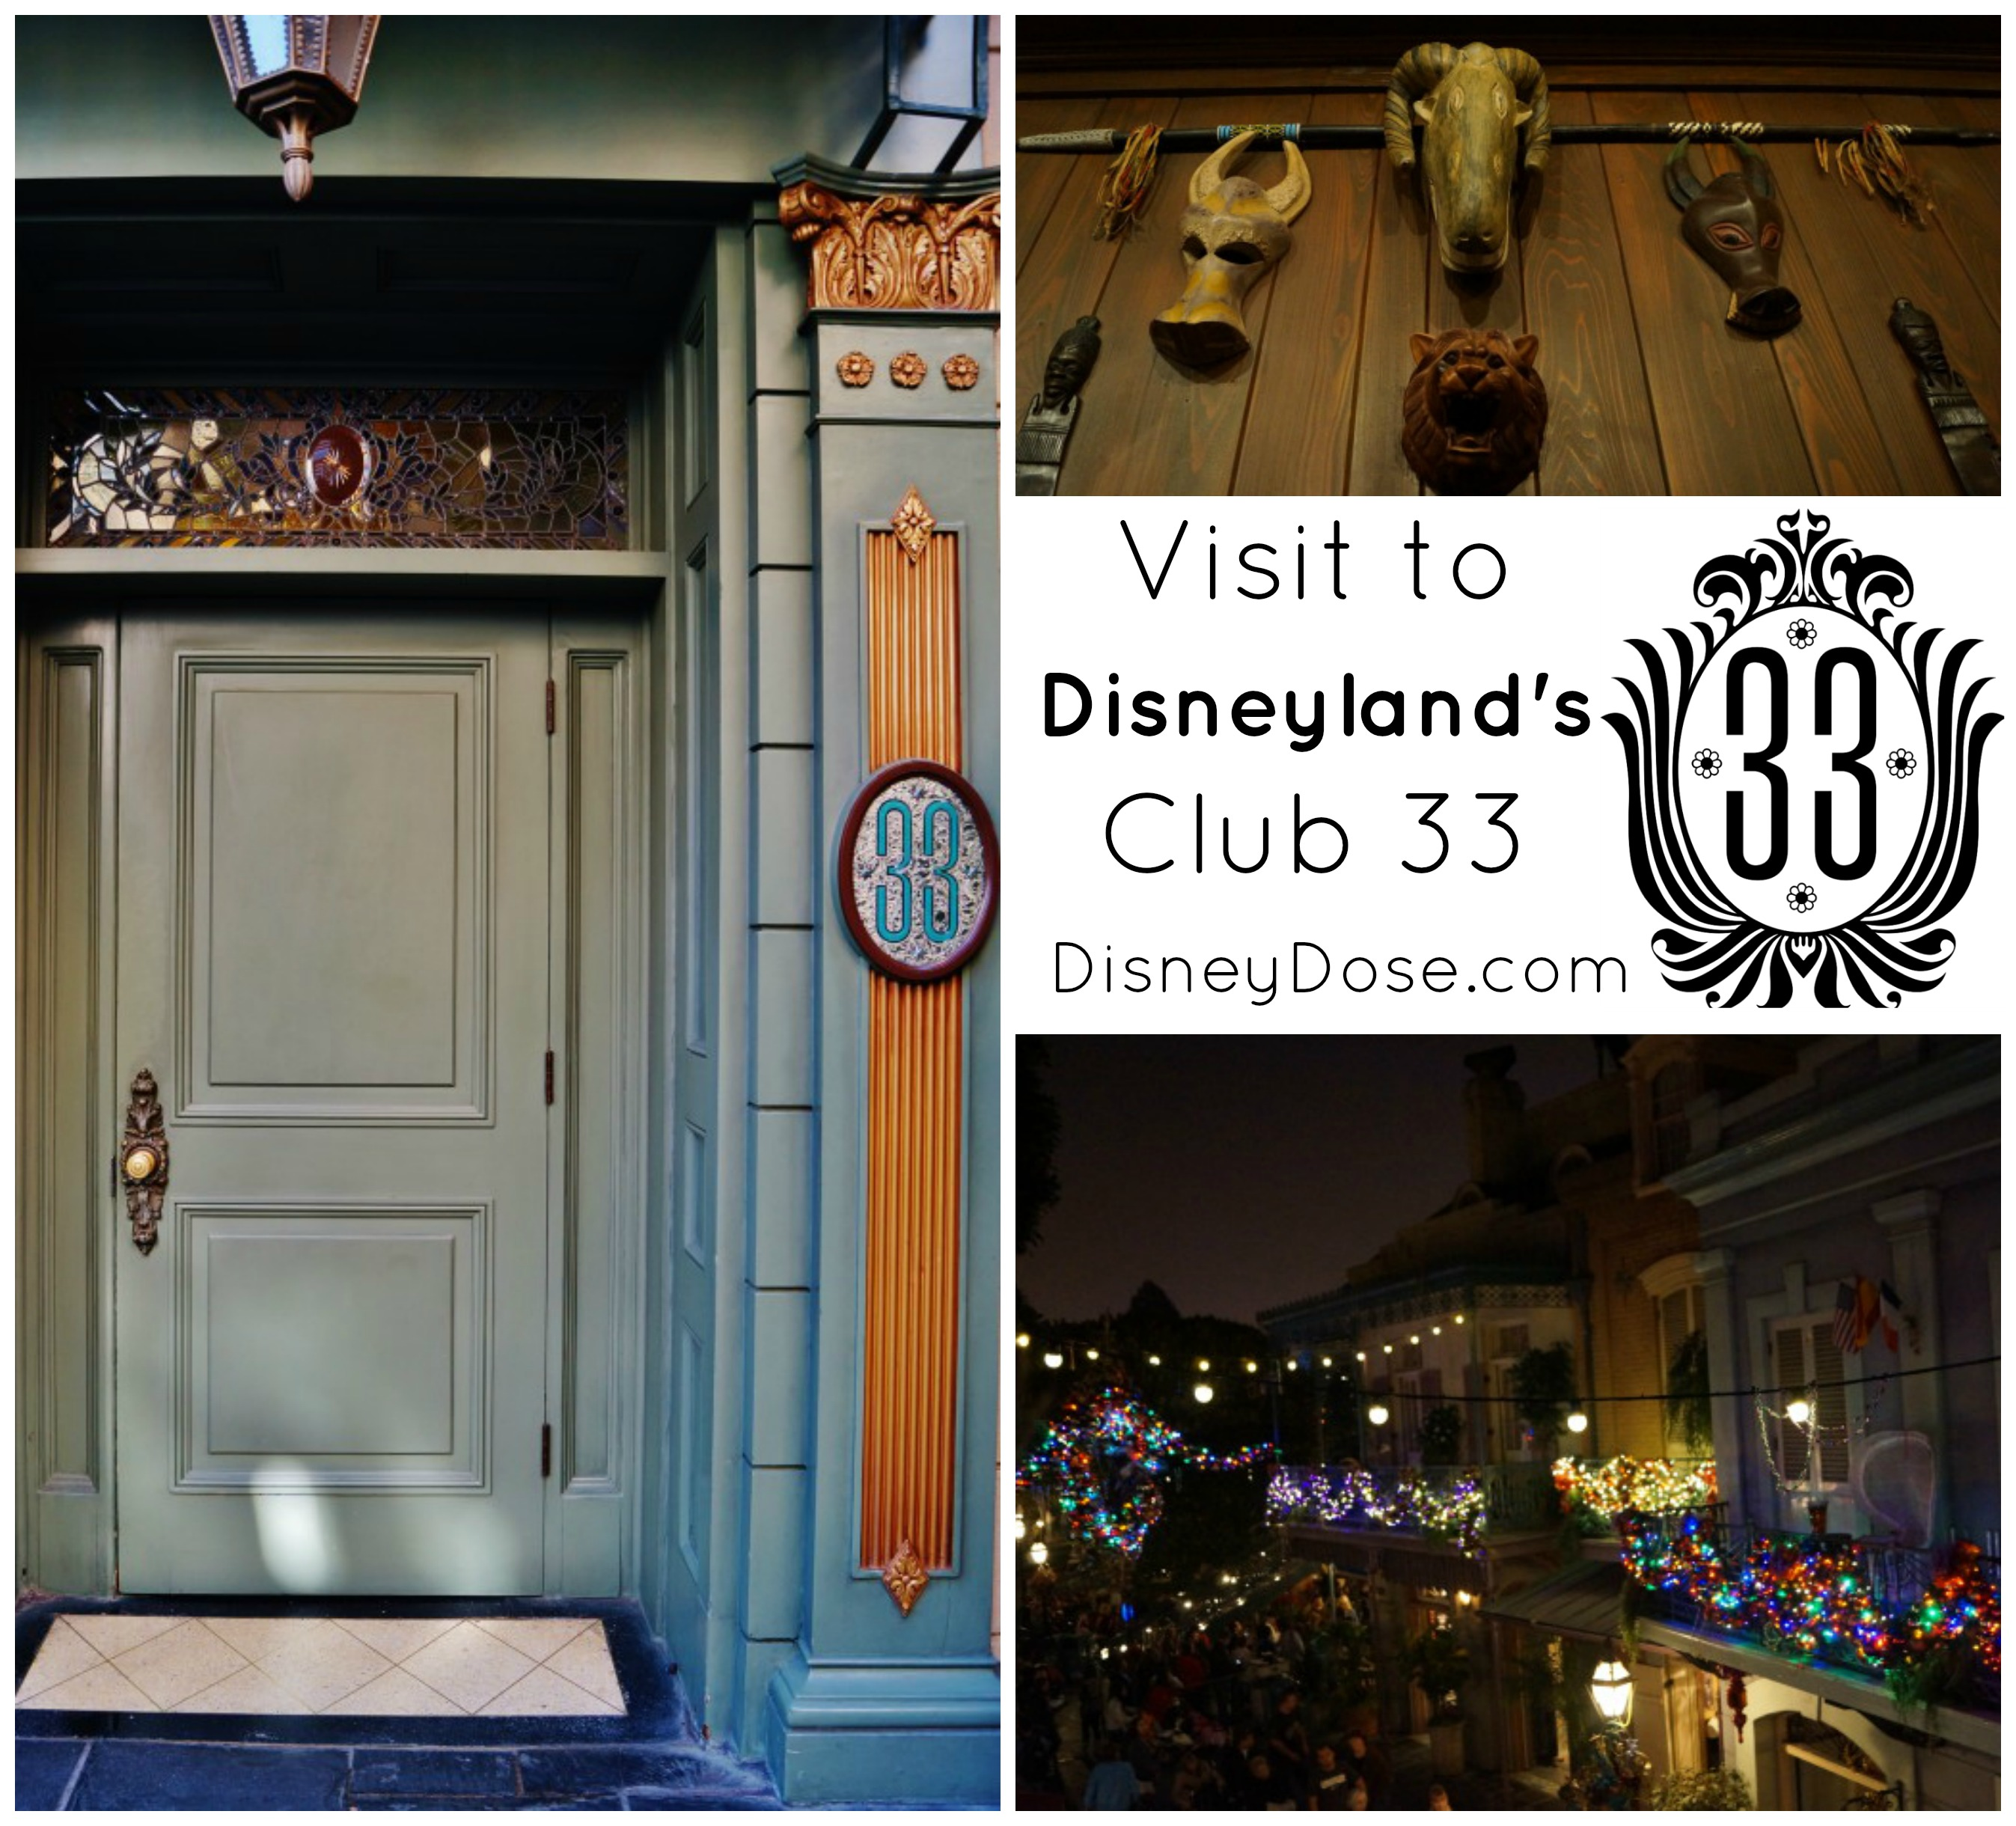 Final Look at Disneyland's Club 33 Before Major Expansion Adding ...